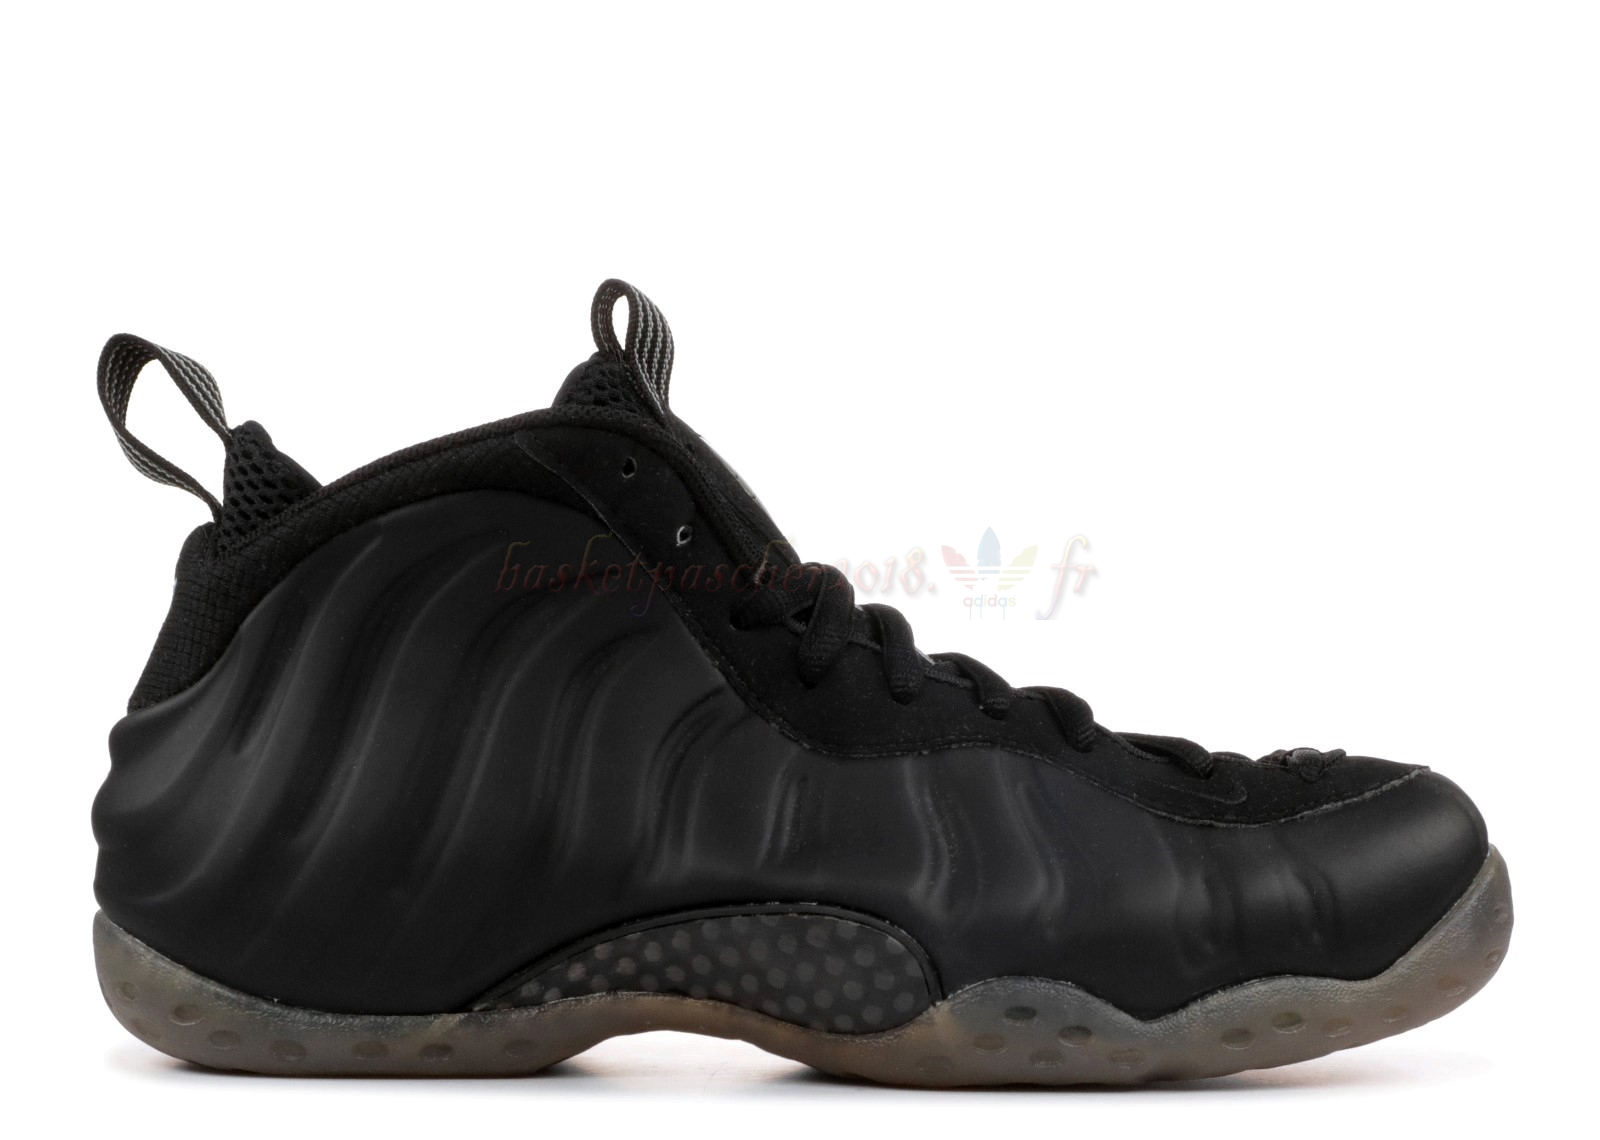 the best attitude 6a45a 485ca Vente Chaude Chaussures De Basketball Homme Nike Air Foamposite One